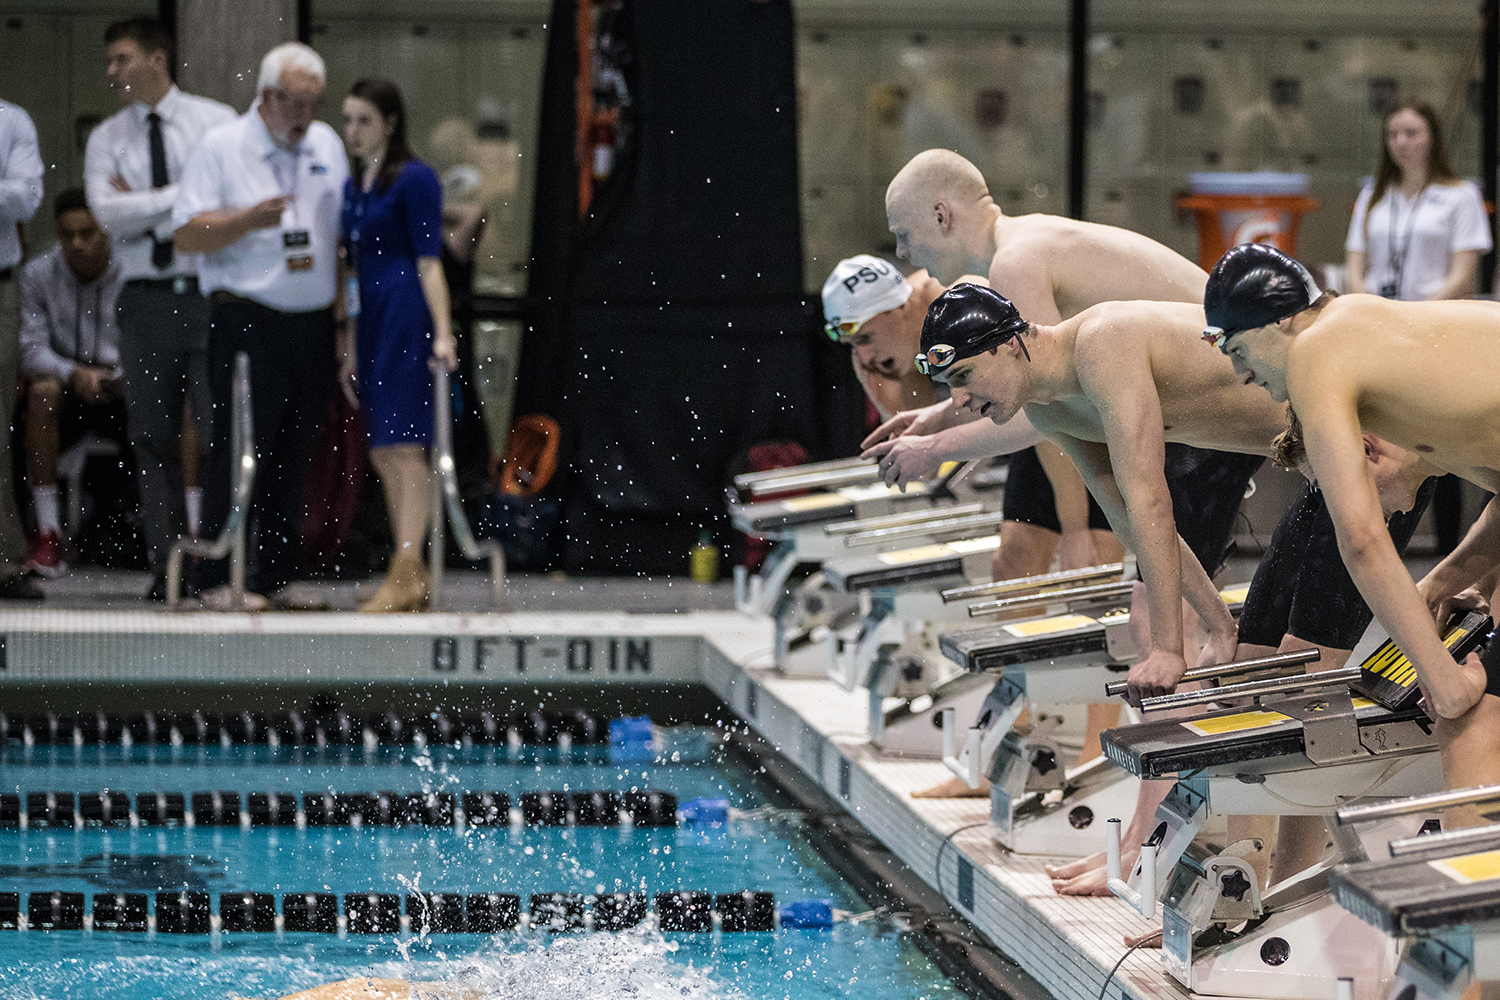 Swimmers+encourage+their+teammates+during+the+first+day+of+the+2019+Big+Ten+Men%27s+Swimming+and+Diving+Championships+at+the+CRWC+on+Wednesday%2C+February+27%2C+2019.+